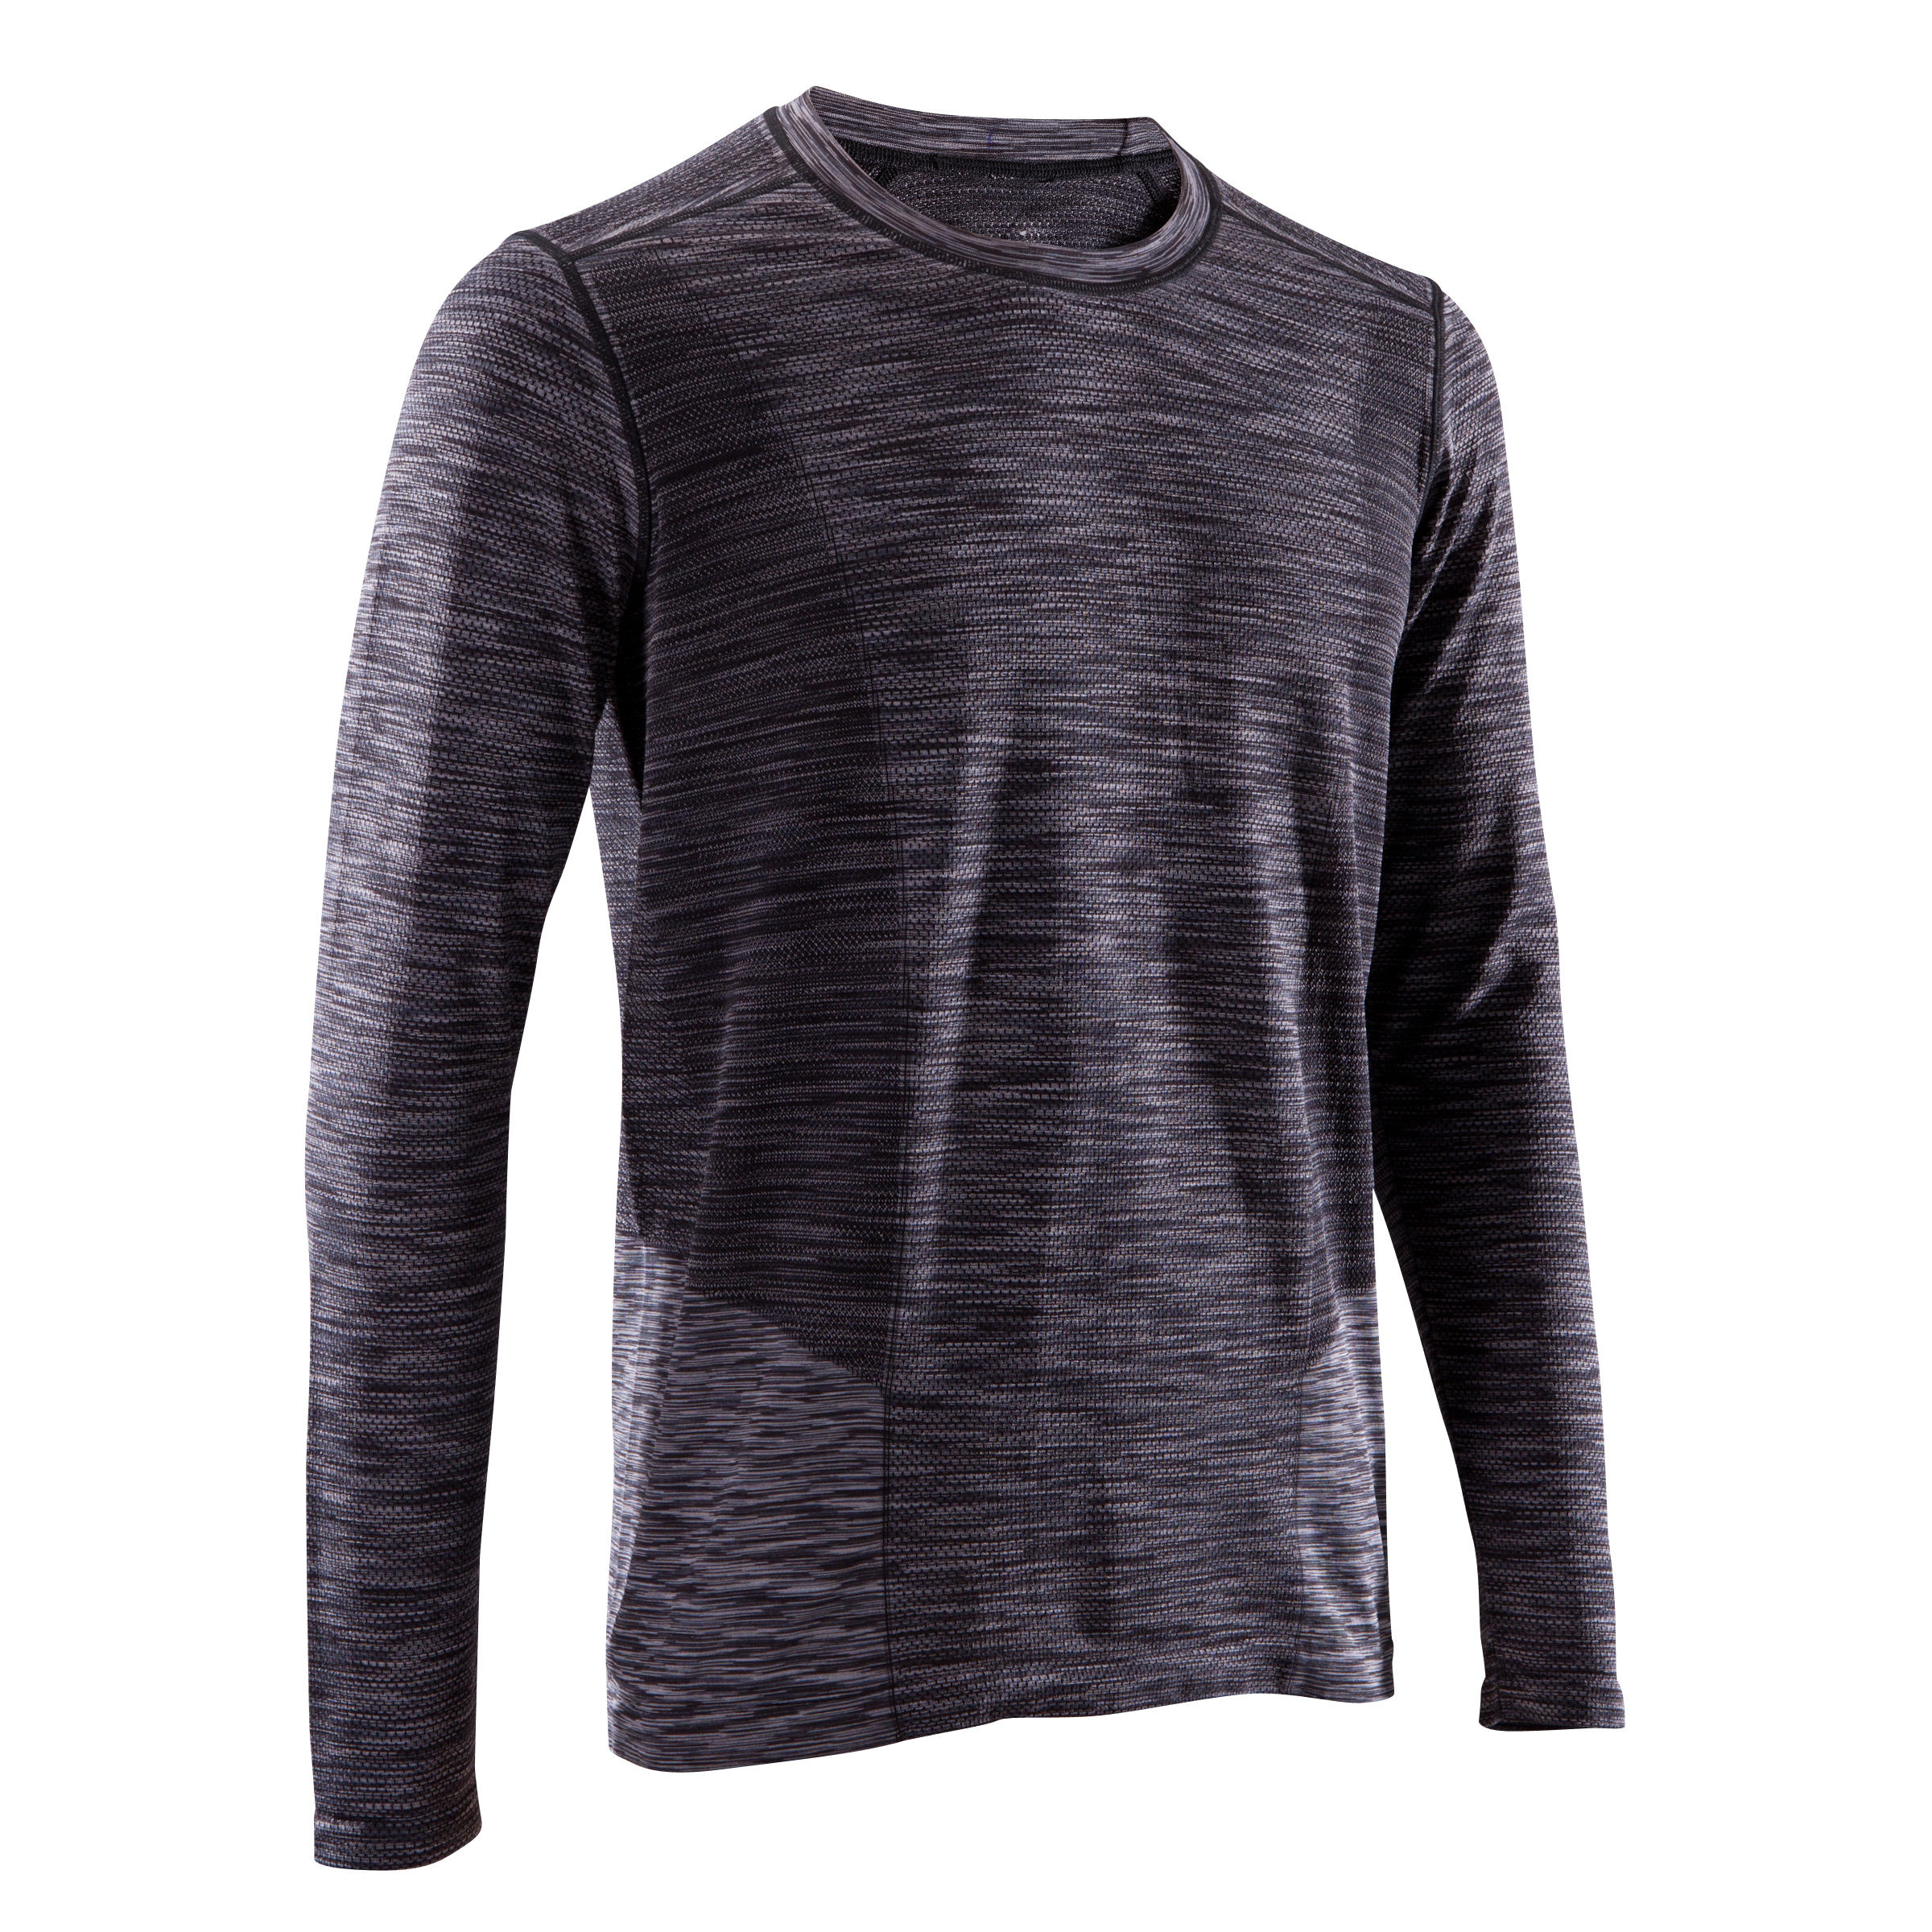 Long-Sleeved Seamless Yoga T-Shirt - Black/Grey